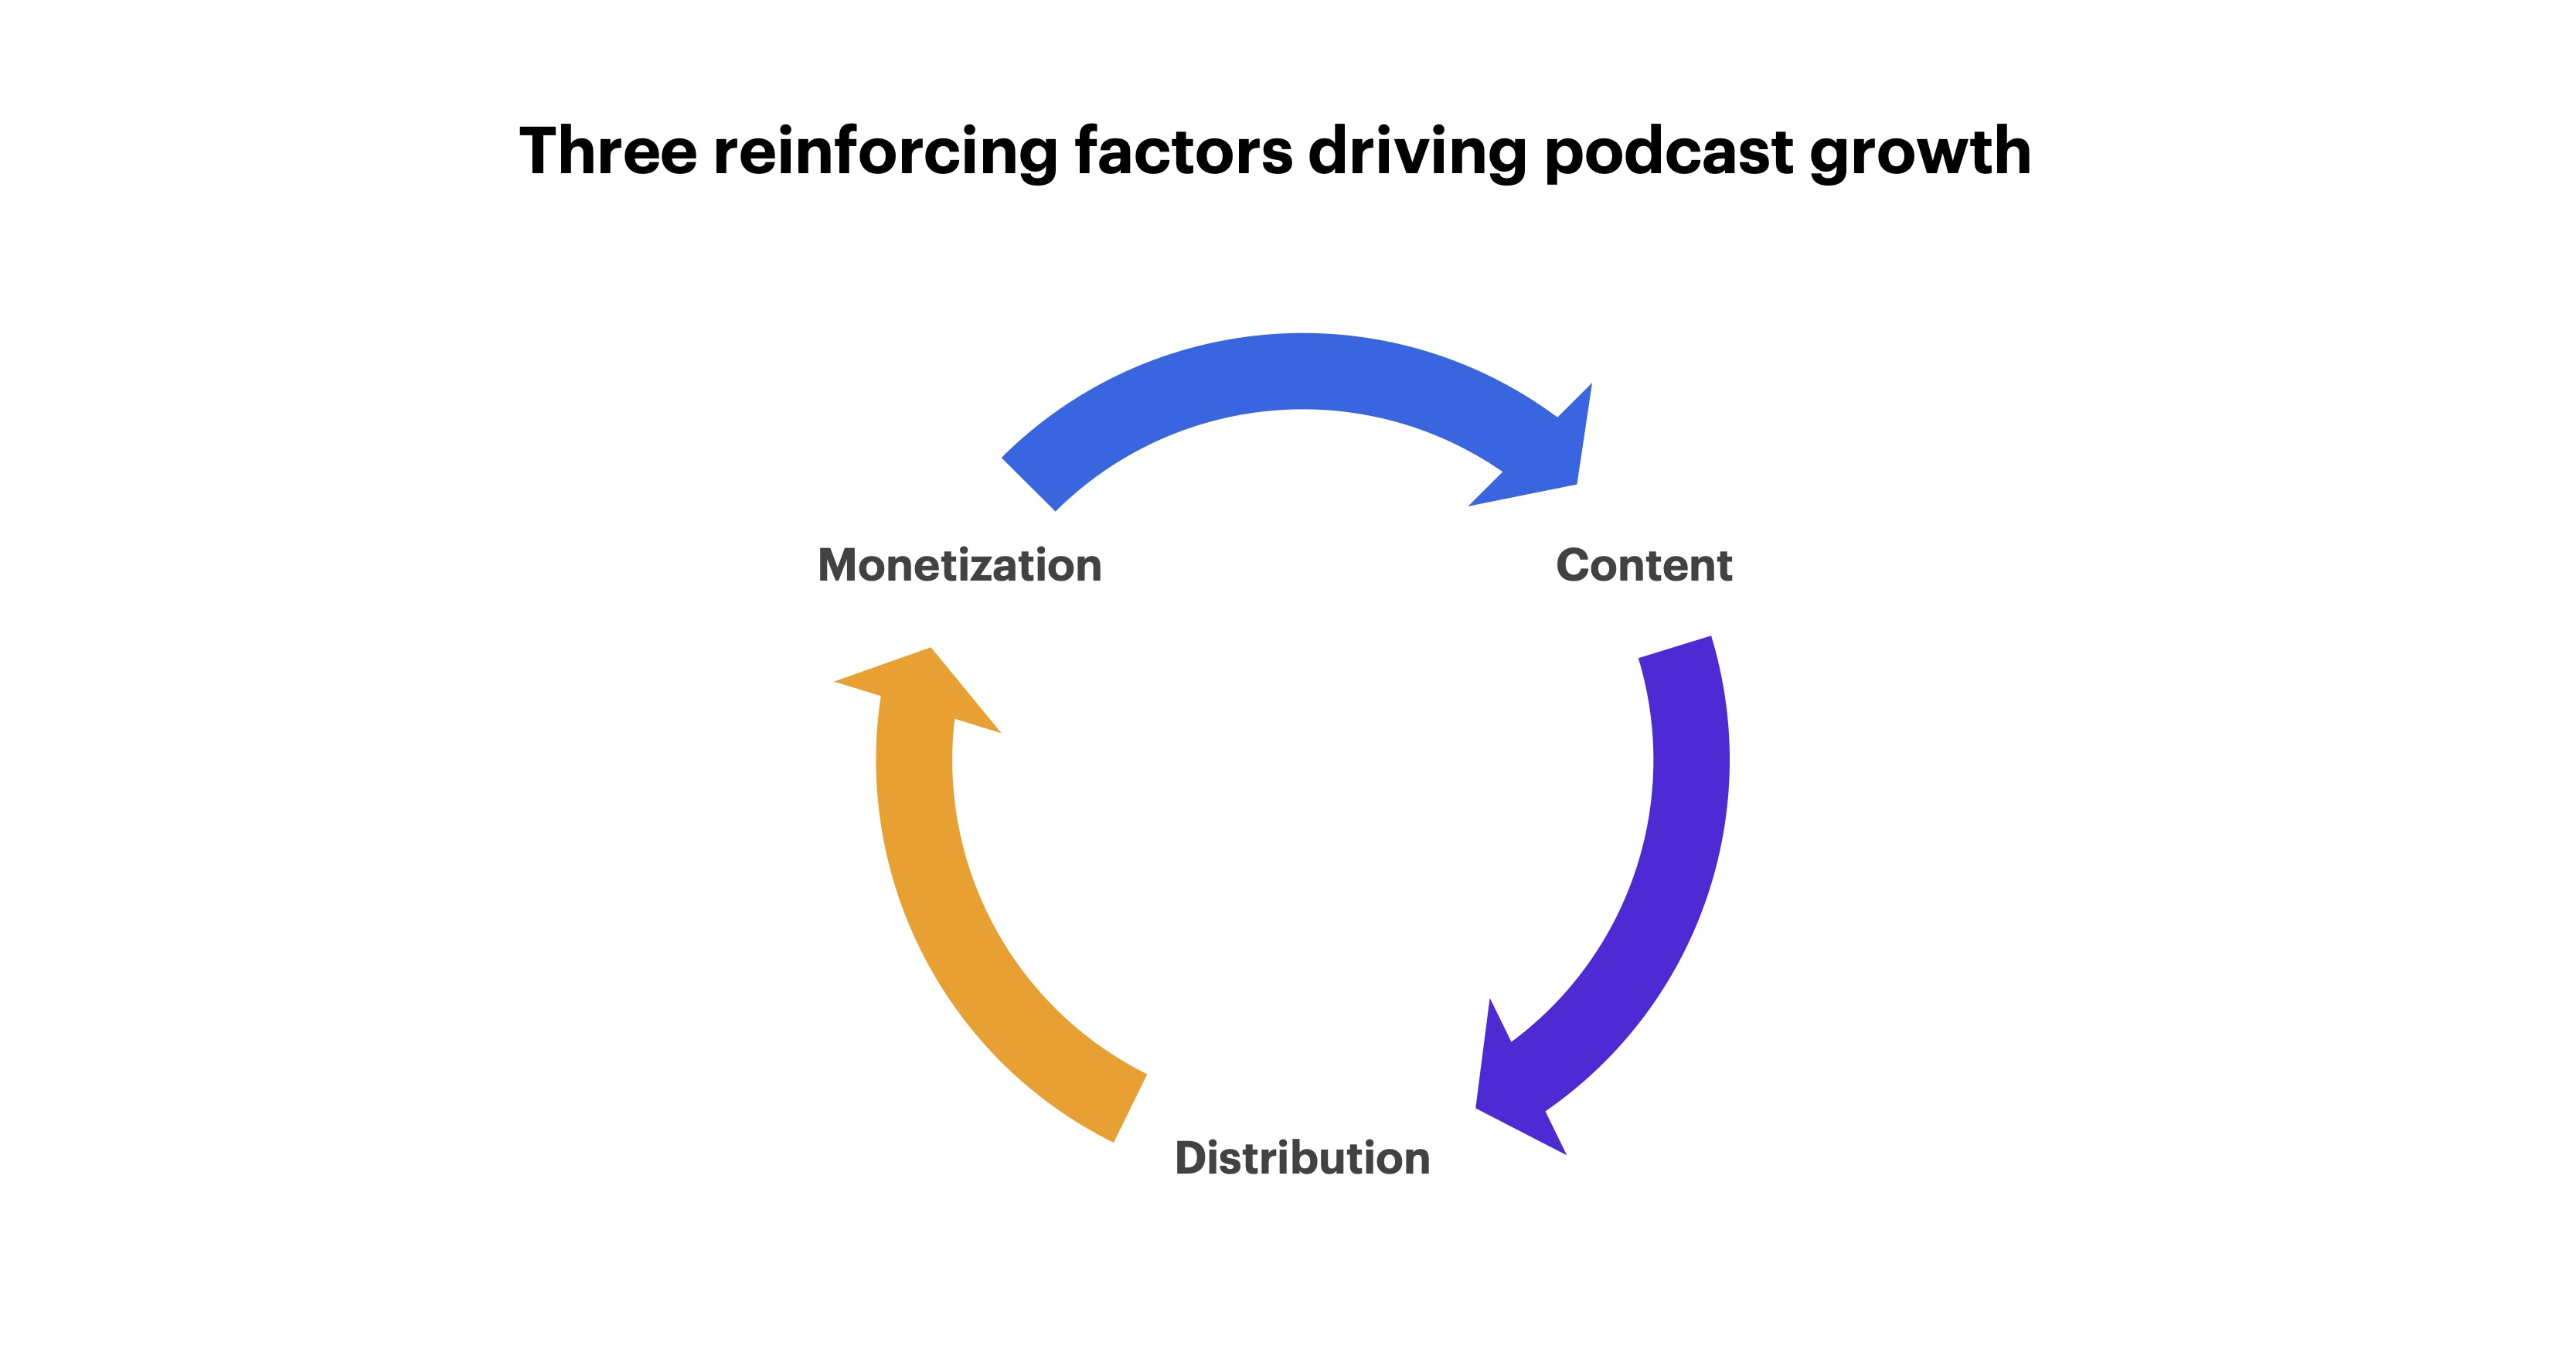 Three reinforcing factors driving podcast growth